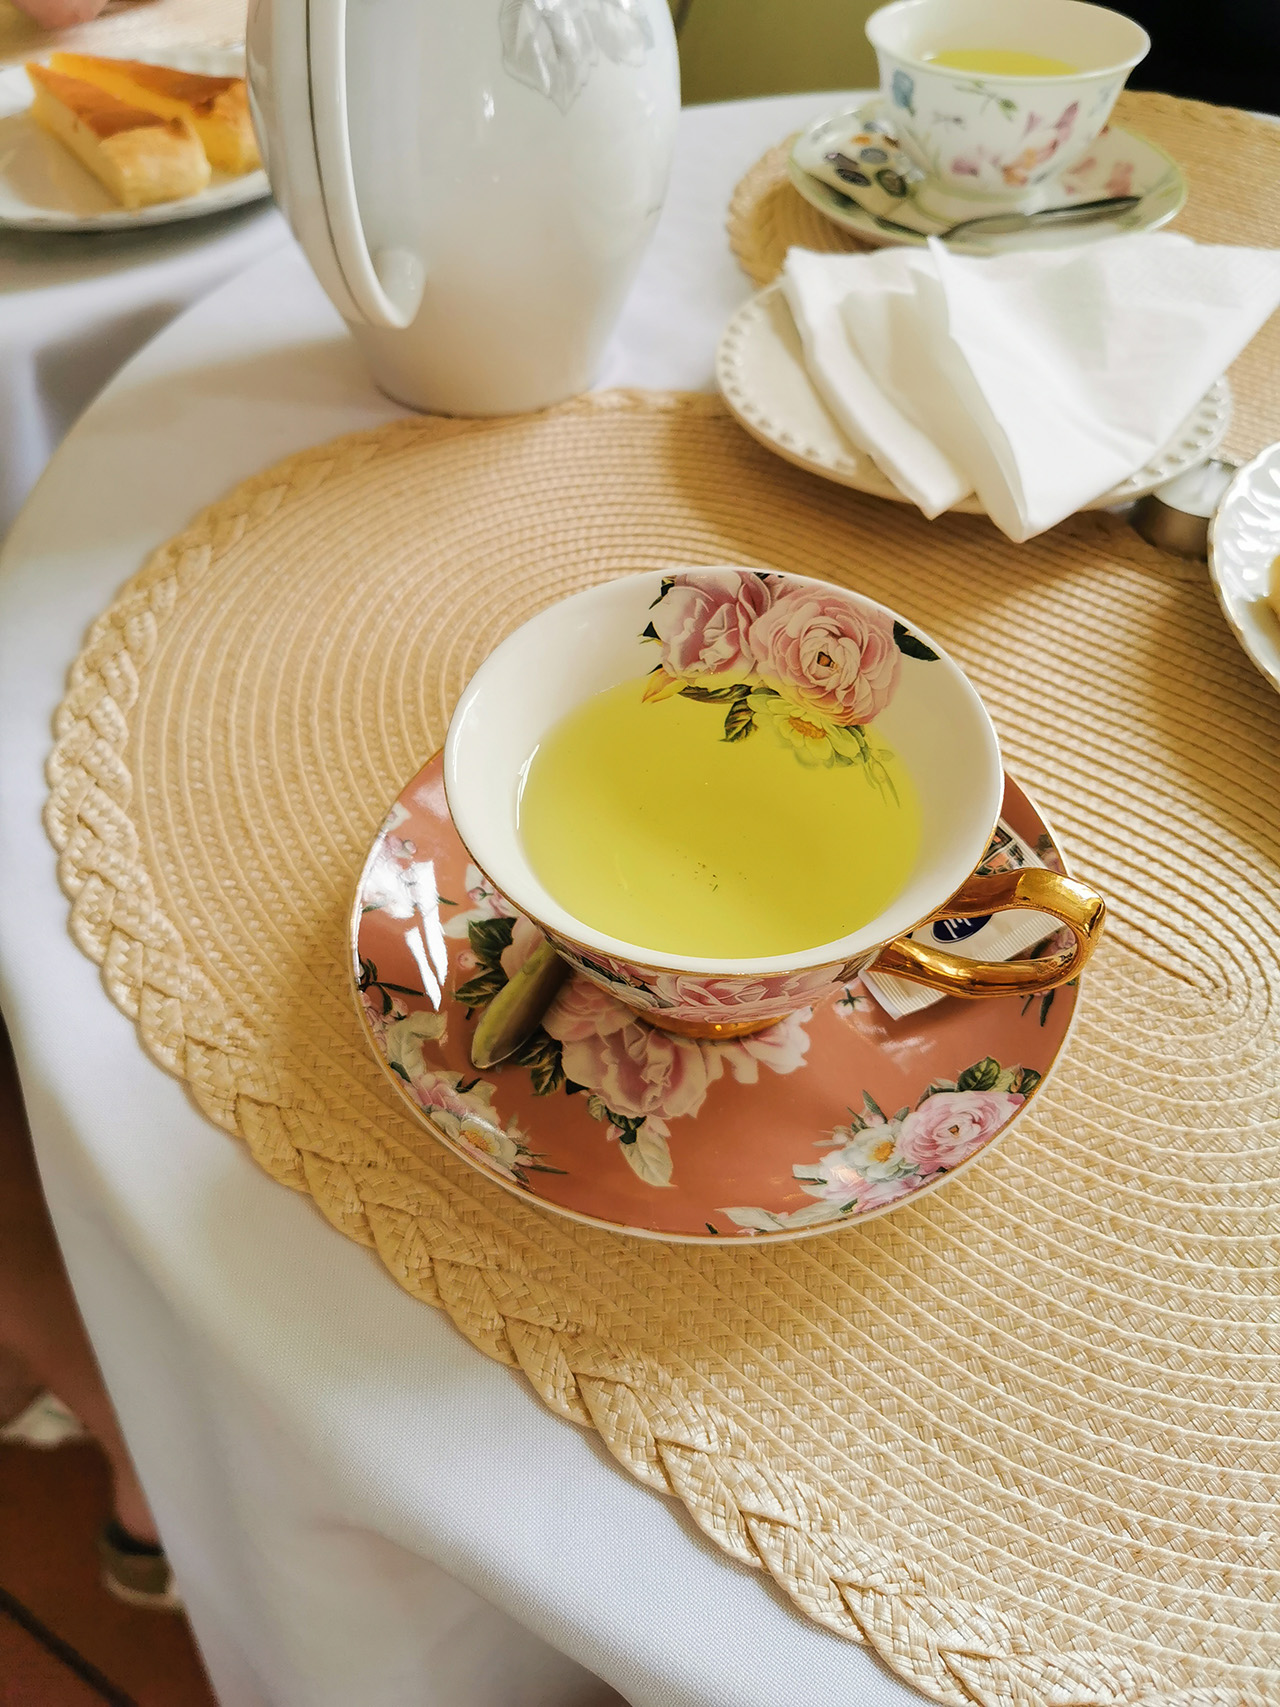 Aromatic fennel tea served in beautiful cups.